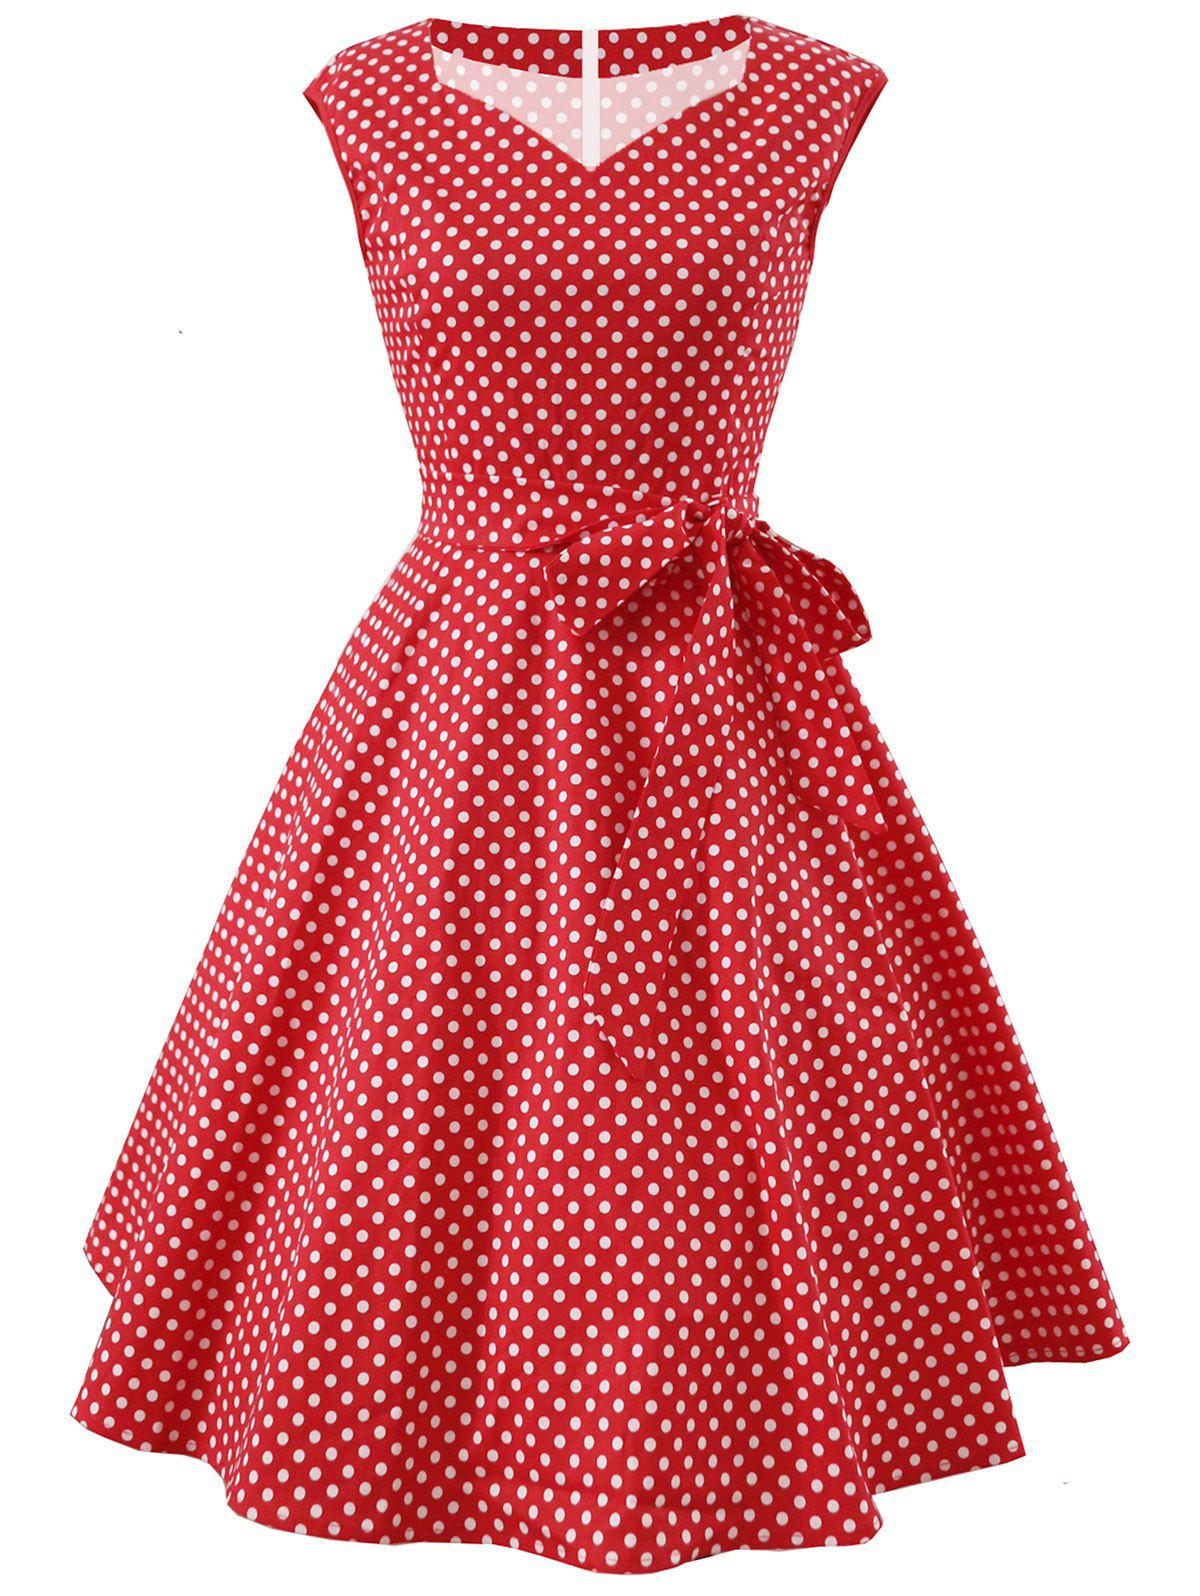 Store Vintage Dotted Fit and Flare Dress